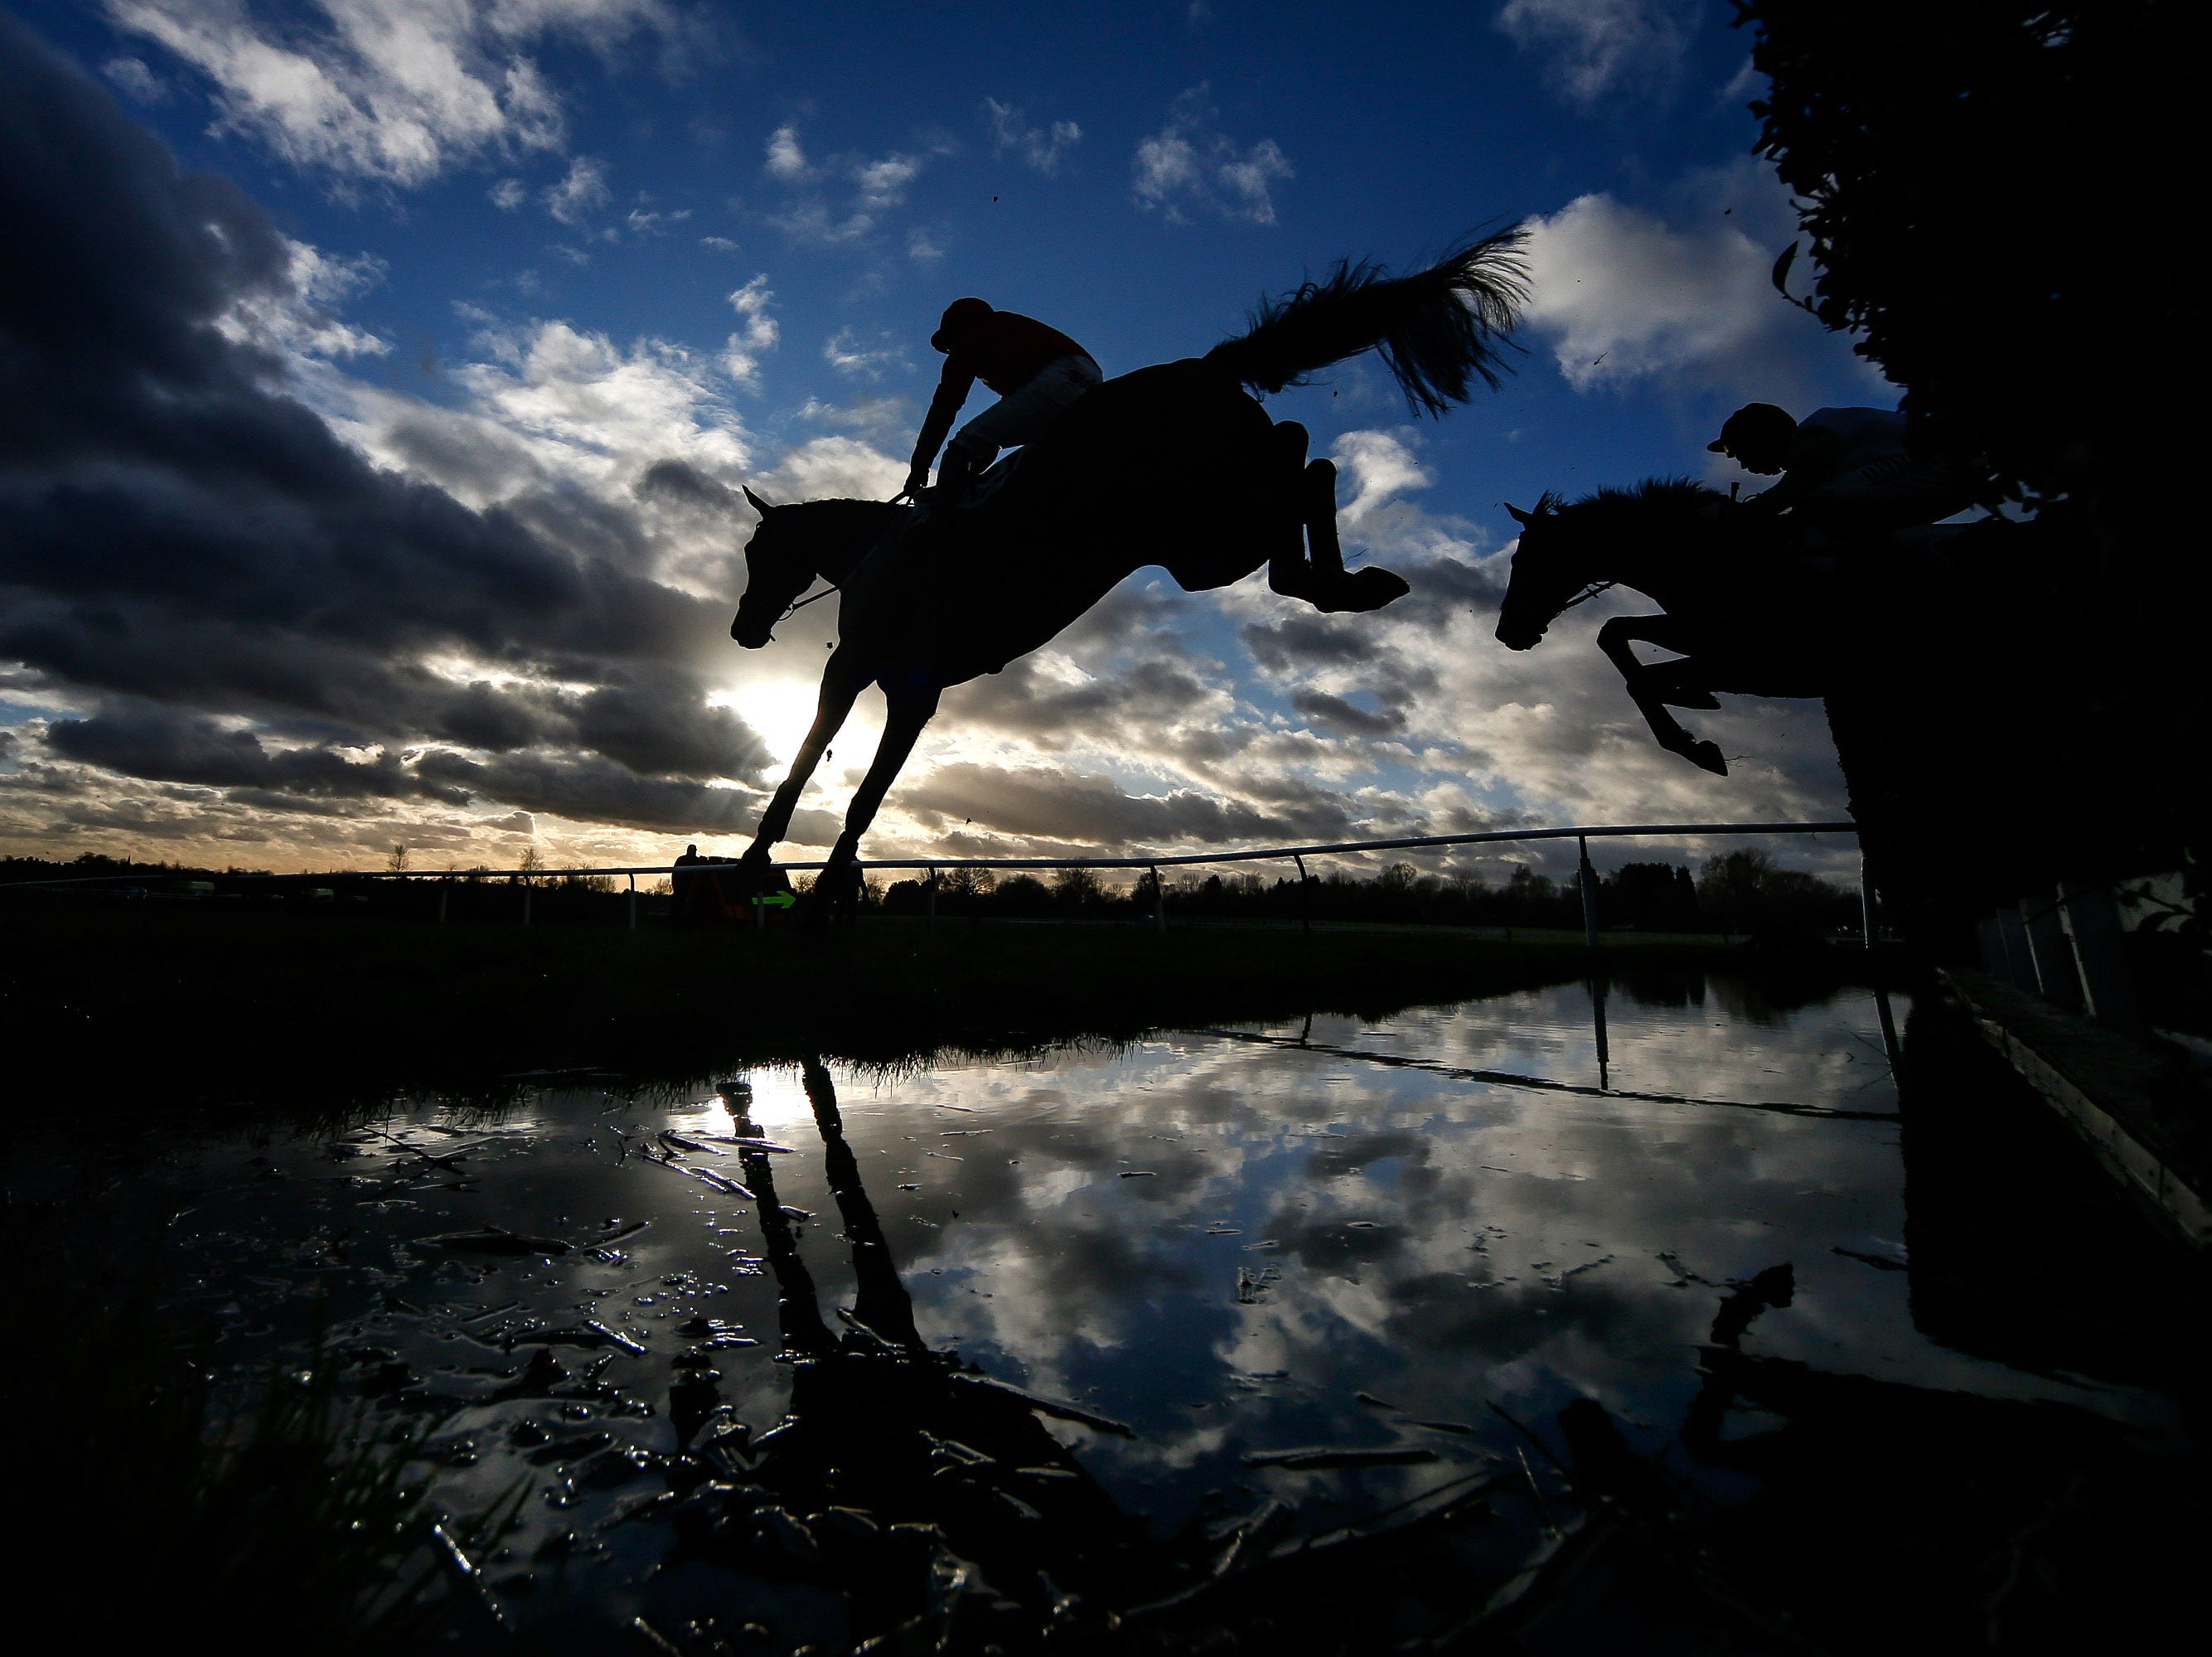 Jan. 31, 2018: A runner clears the water jump at Leicester Racecourse in Leicester, England.